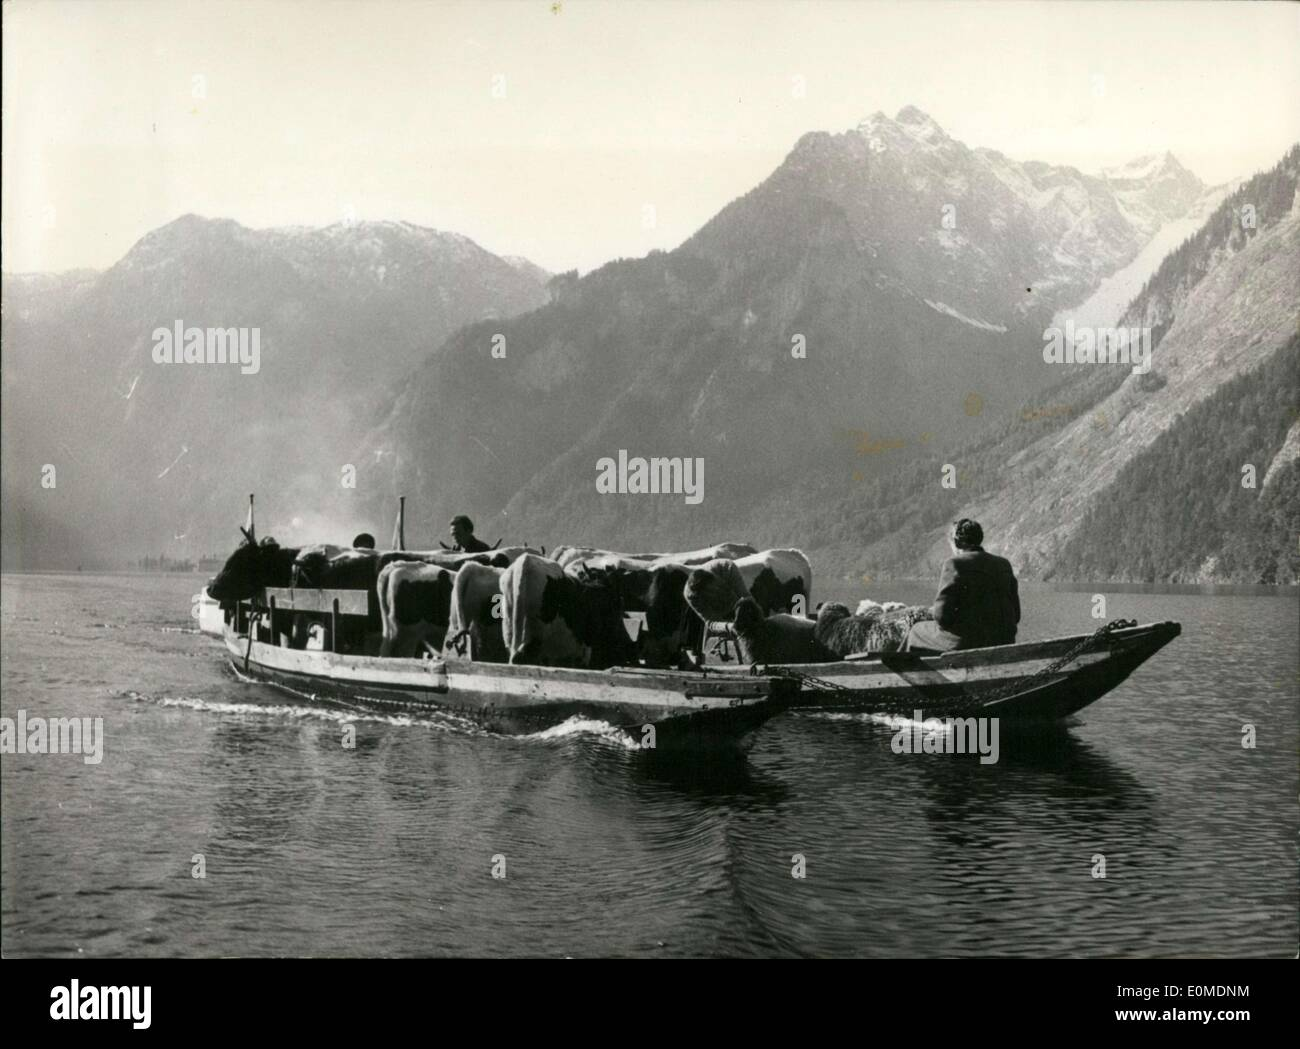 Oct. 16, 1954 - The boatmen had cows in his boat on K?nigsee(King's Sea) yesterday. The boatmen brought the herd, which had drifted away from its grazing pasture, back across the nine kilometer long and 240 meter deep sea to their stalls. - Stock Image